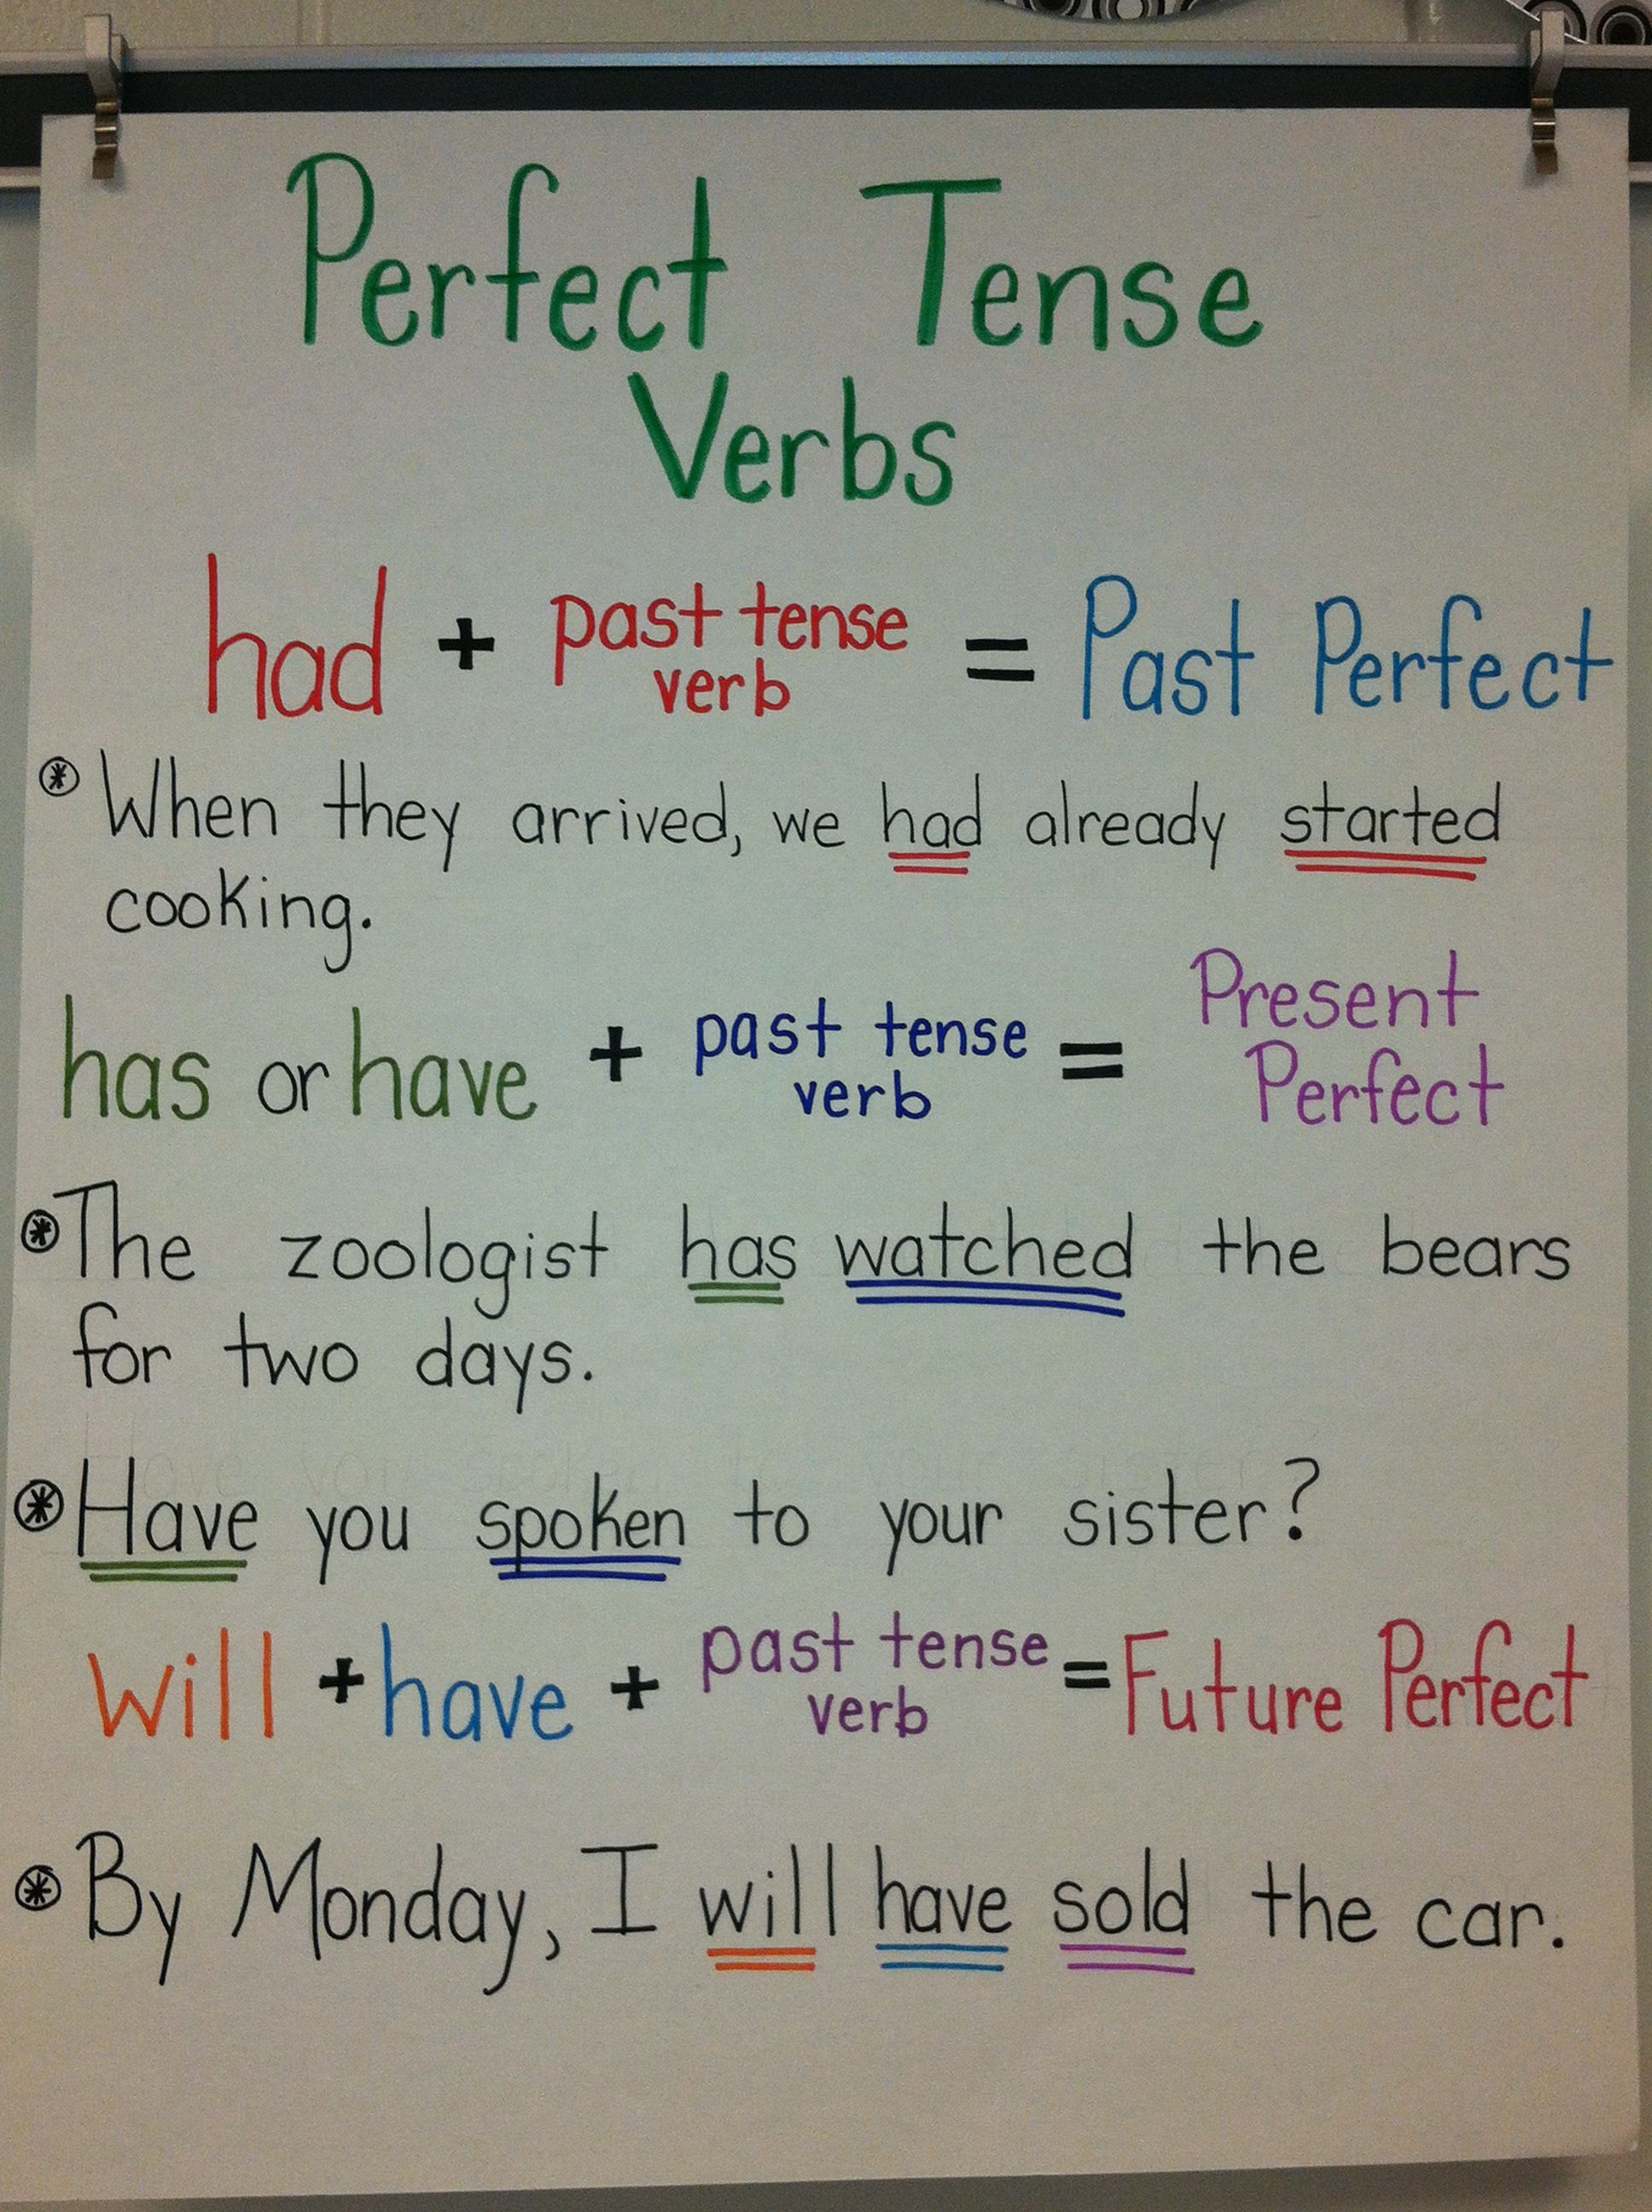 Perfect Tense Verbs Anchor Chart With Images